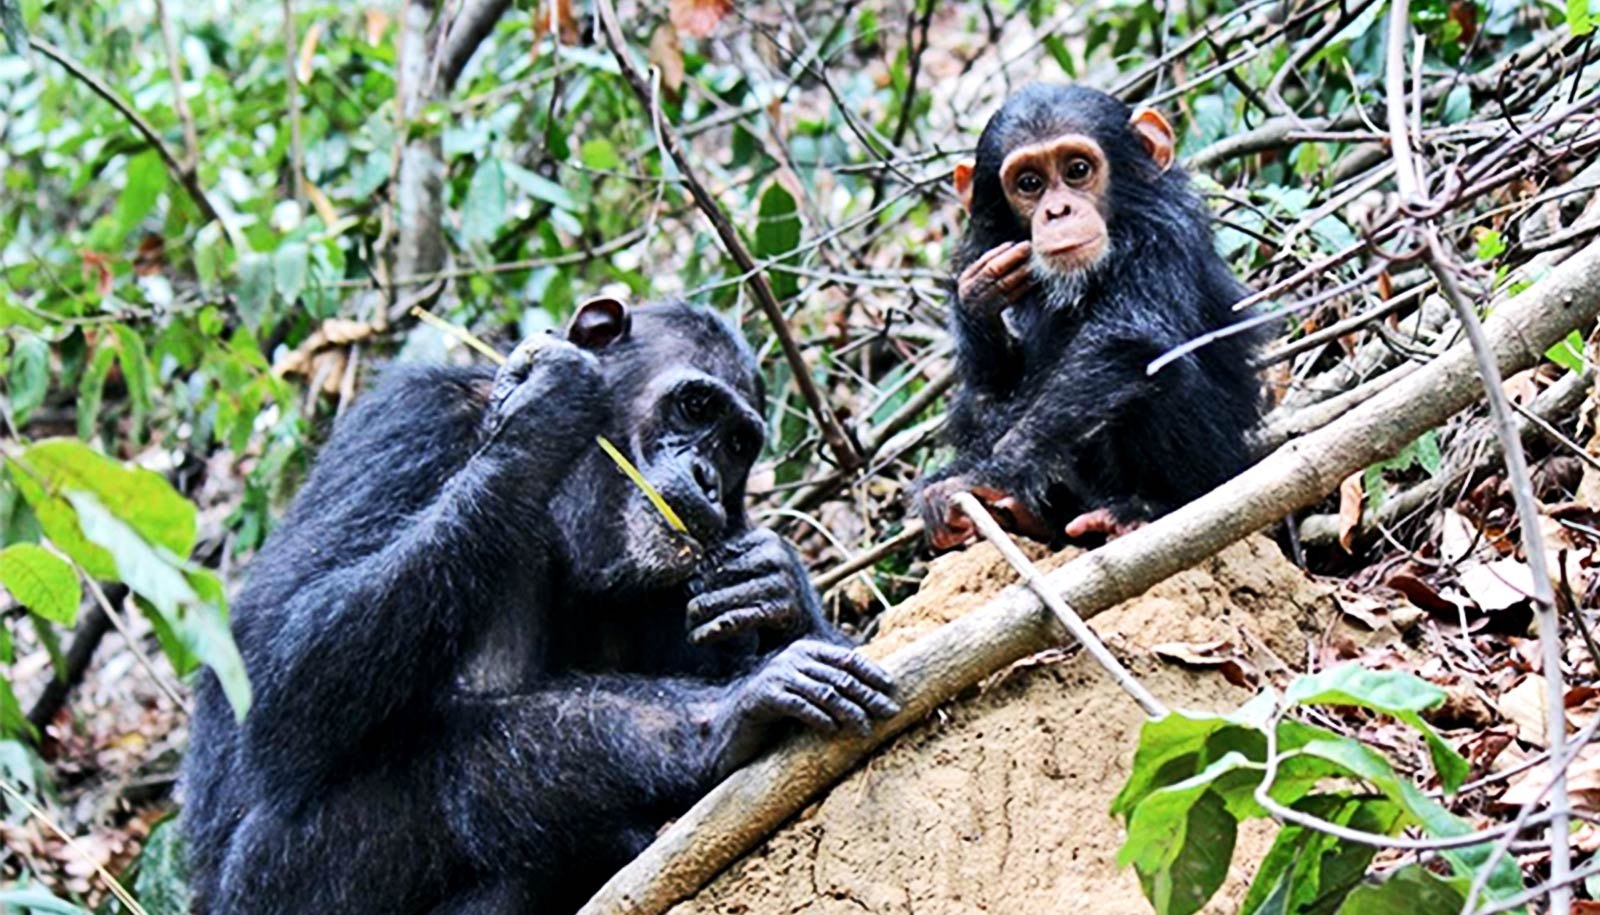 Chimps that use tools for complex tasks pass those skills on